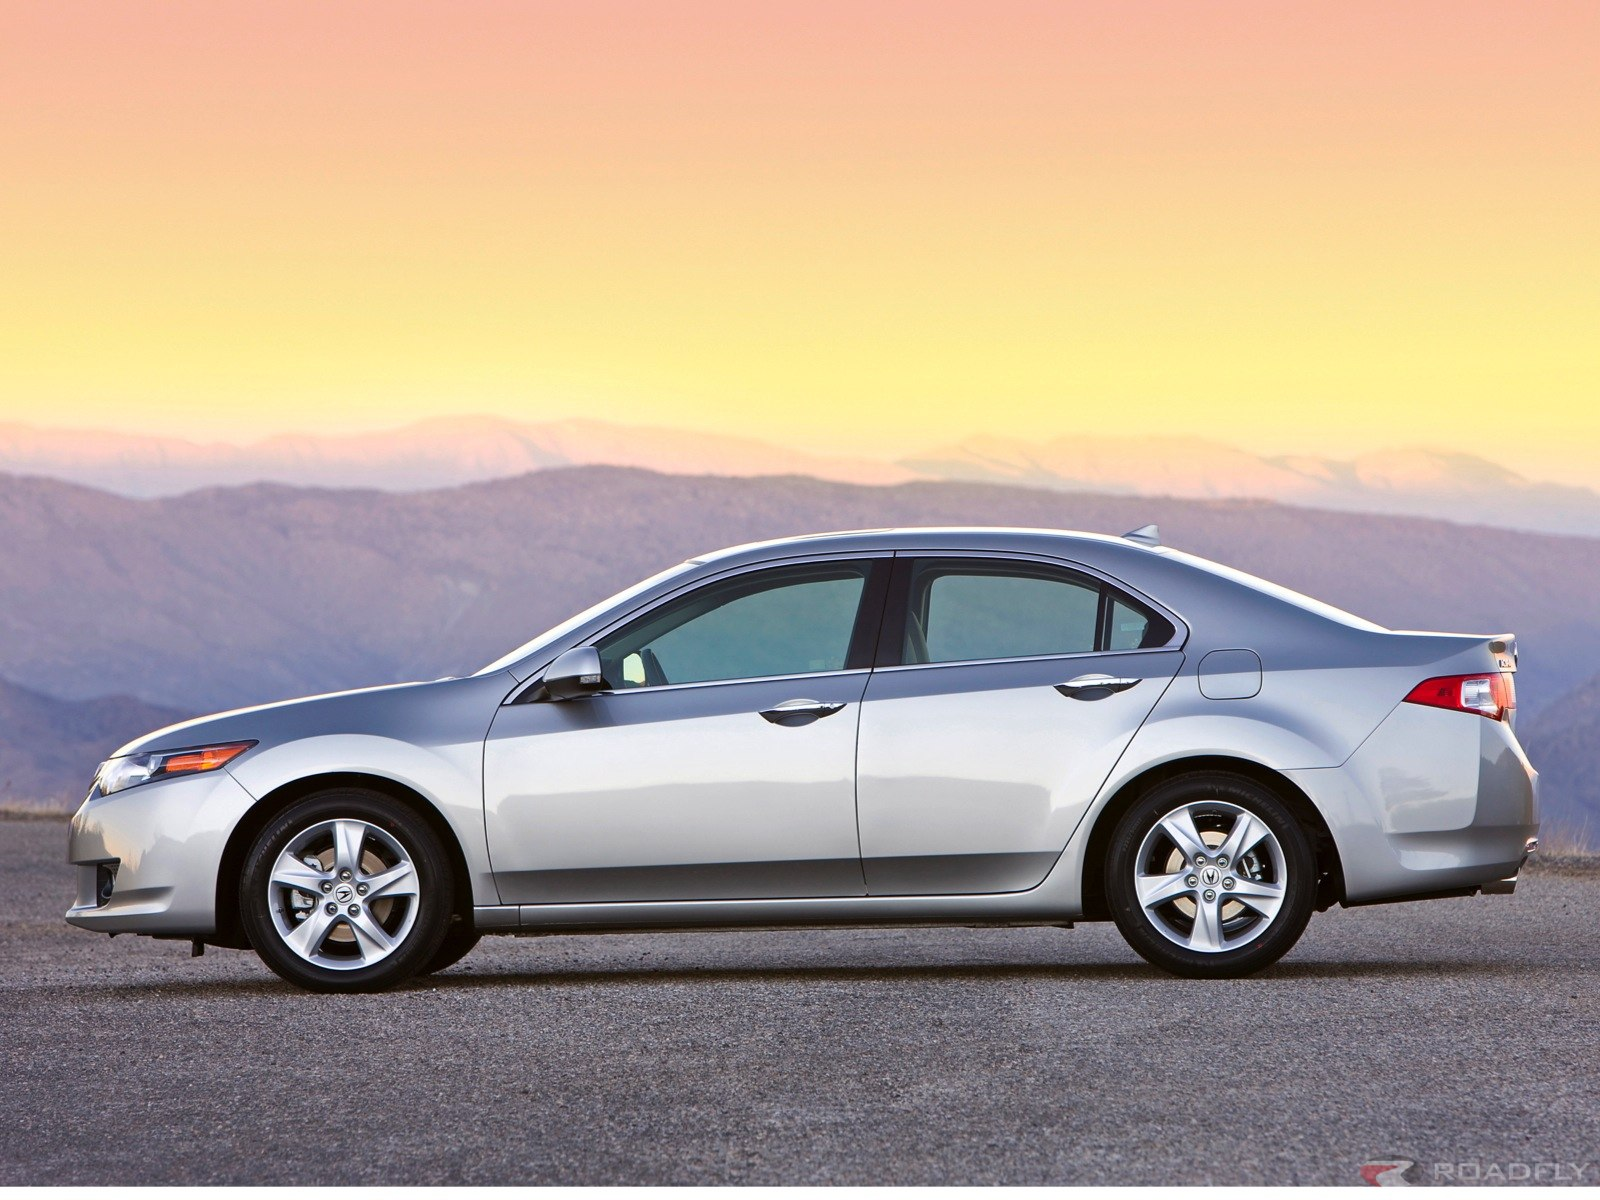 2012 Acura TSX Free Wallpaper For Ipad Wallpaper